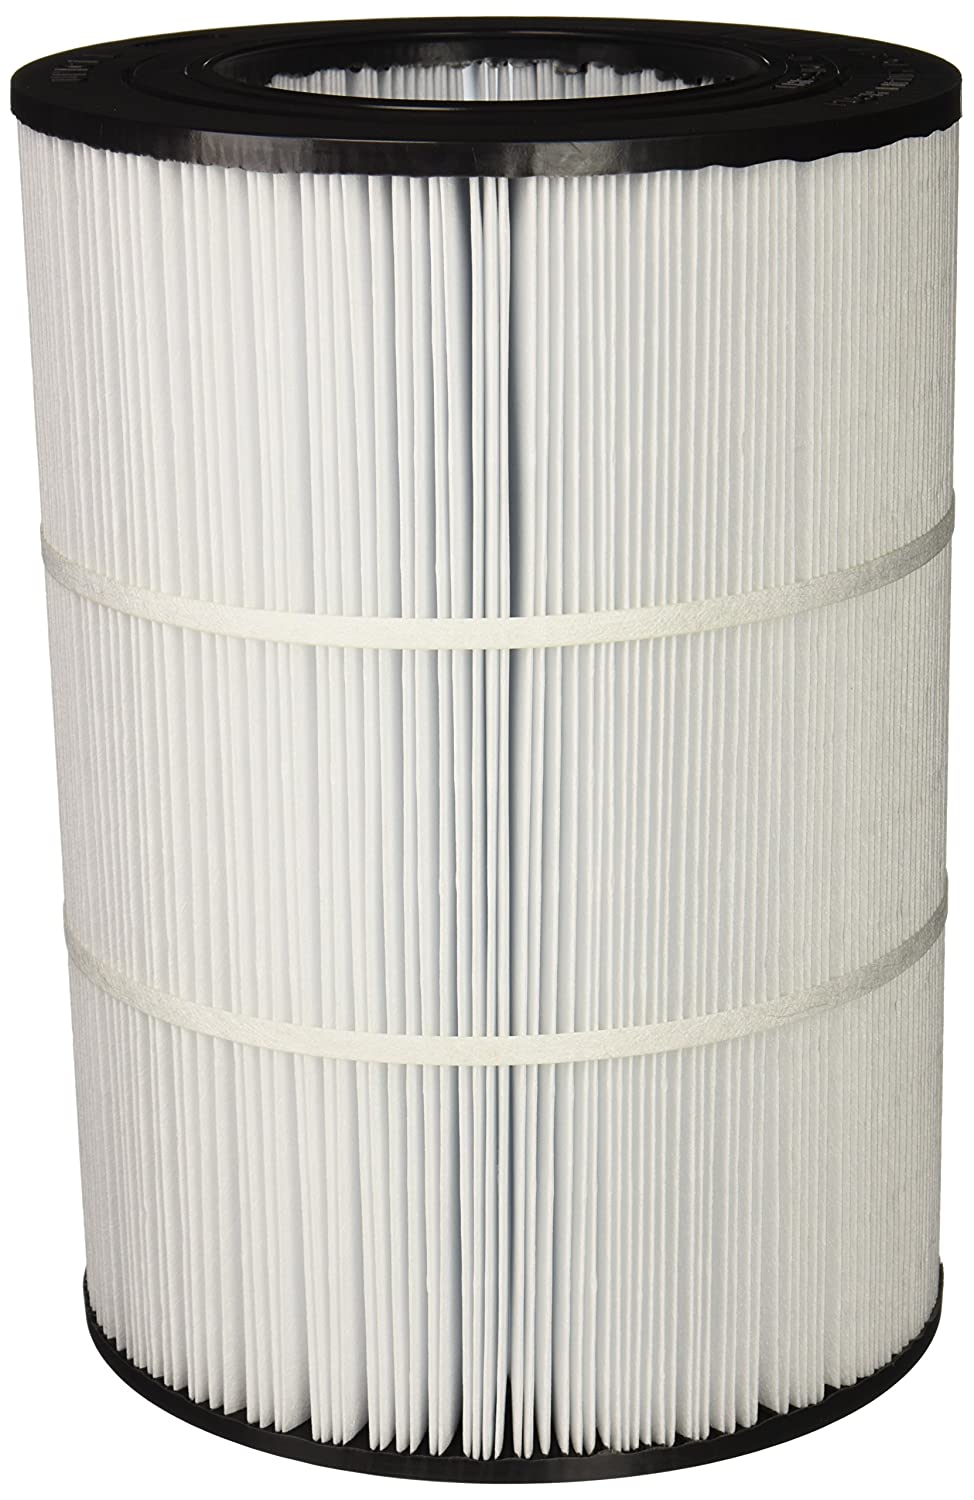 Amazon.com : Unicel C-9475 Replacement Filter Cartridge for 75 ...